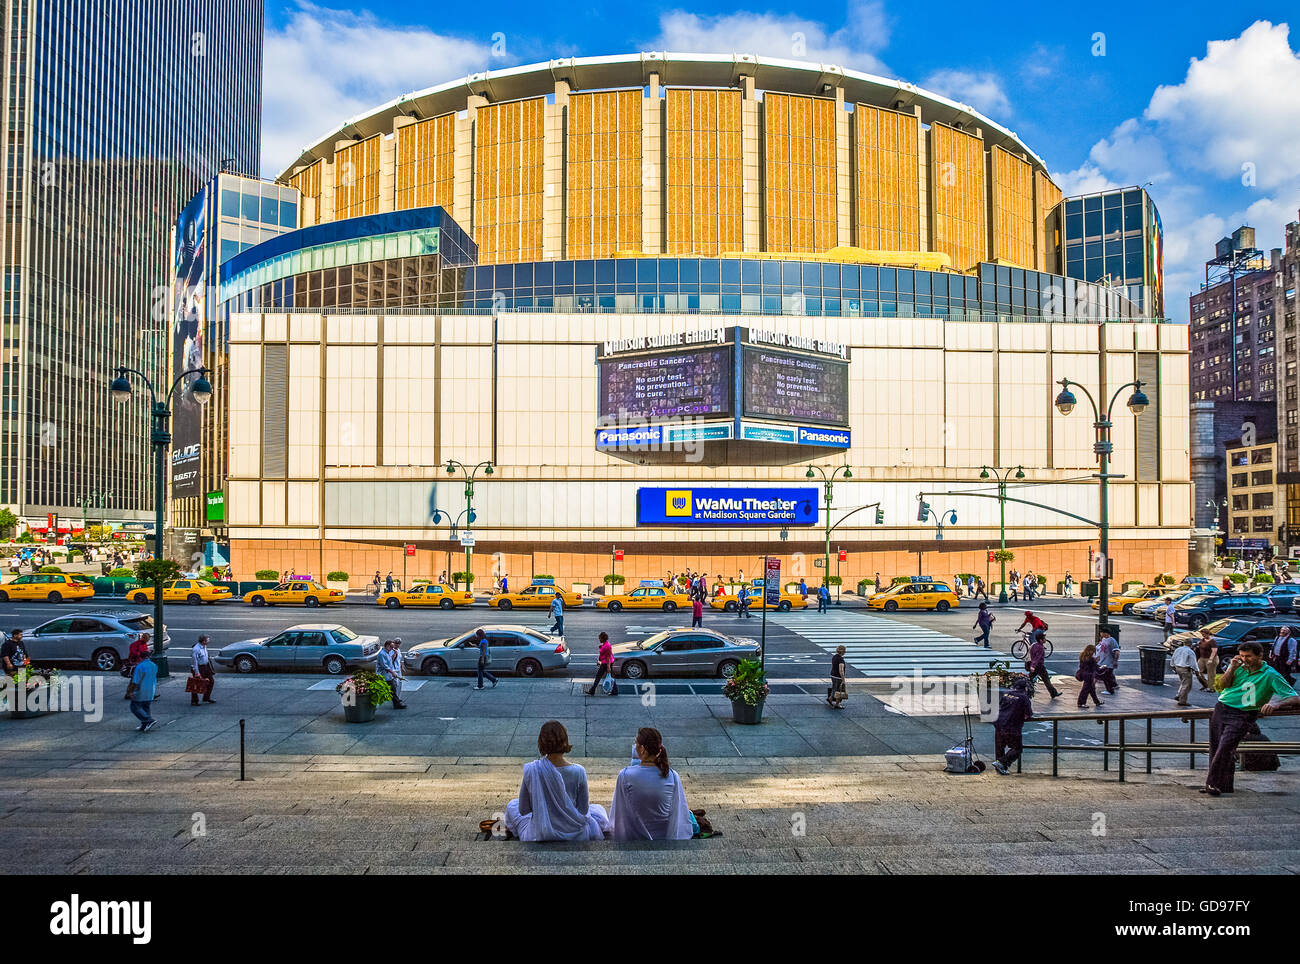 U.S.A., New York,Manhattan,people in from of the Madison Square Garden - Stock Image